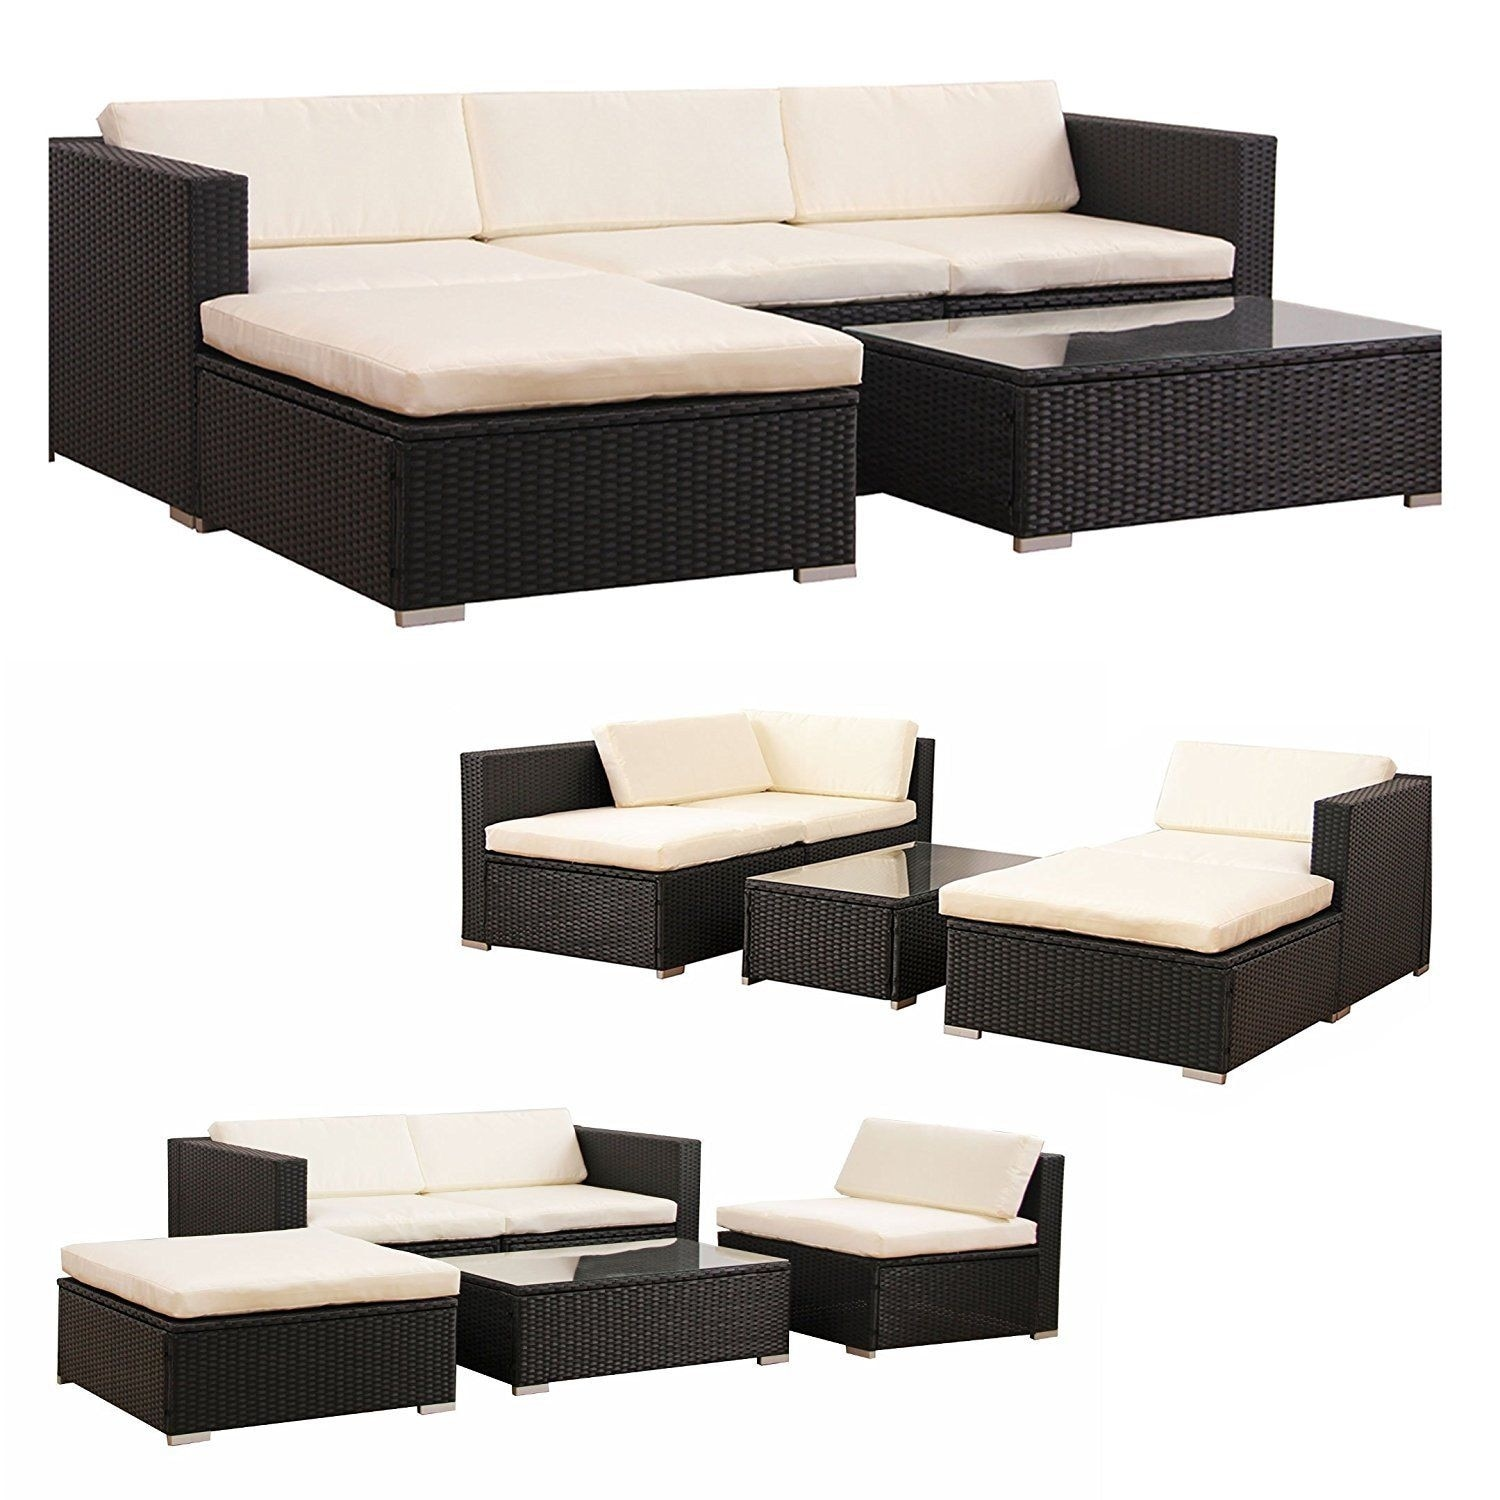 Costway 5 Pcs Patio Furniture Set Rattan Wicker Table Shelf Garden Sofa W Cushion Brown Free Shipping Today 18531901